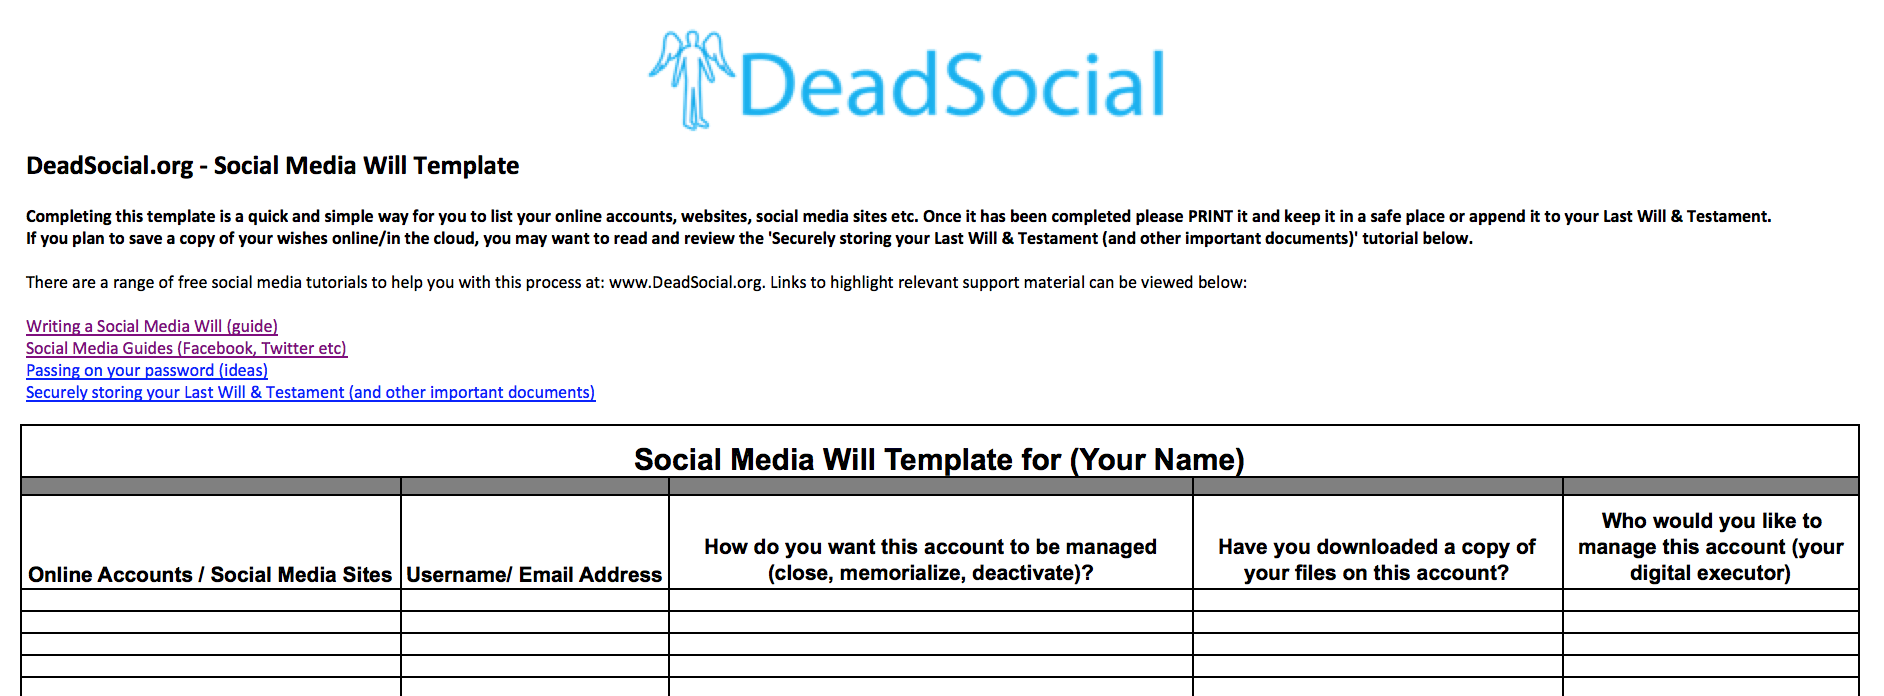 deadsocial prepare for death digitally build your digital legacy